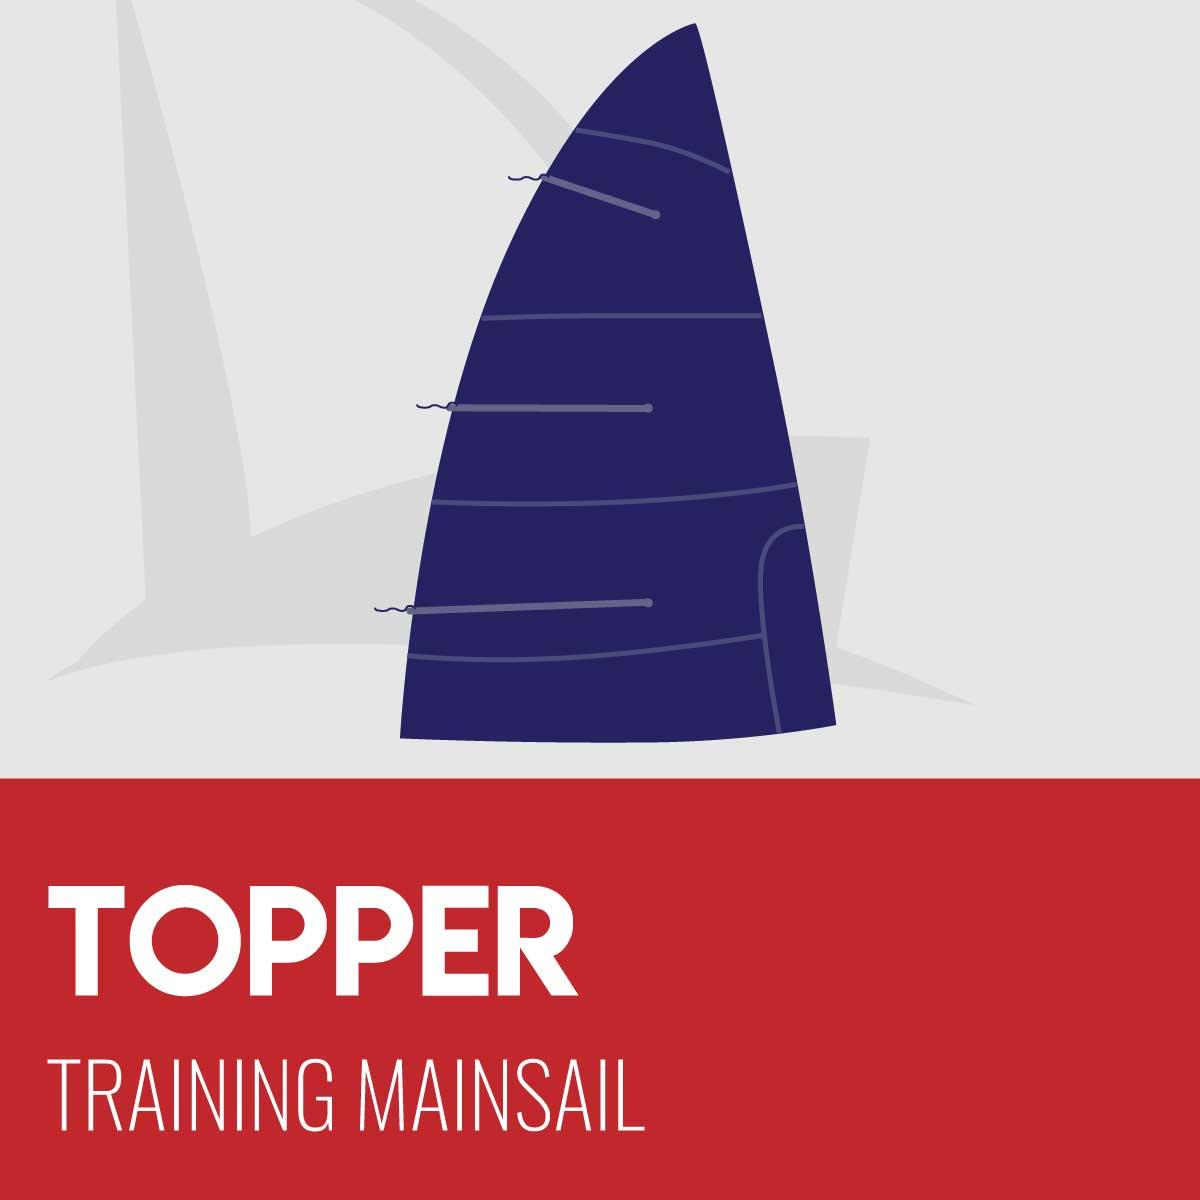 Topper Training Mainsail